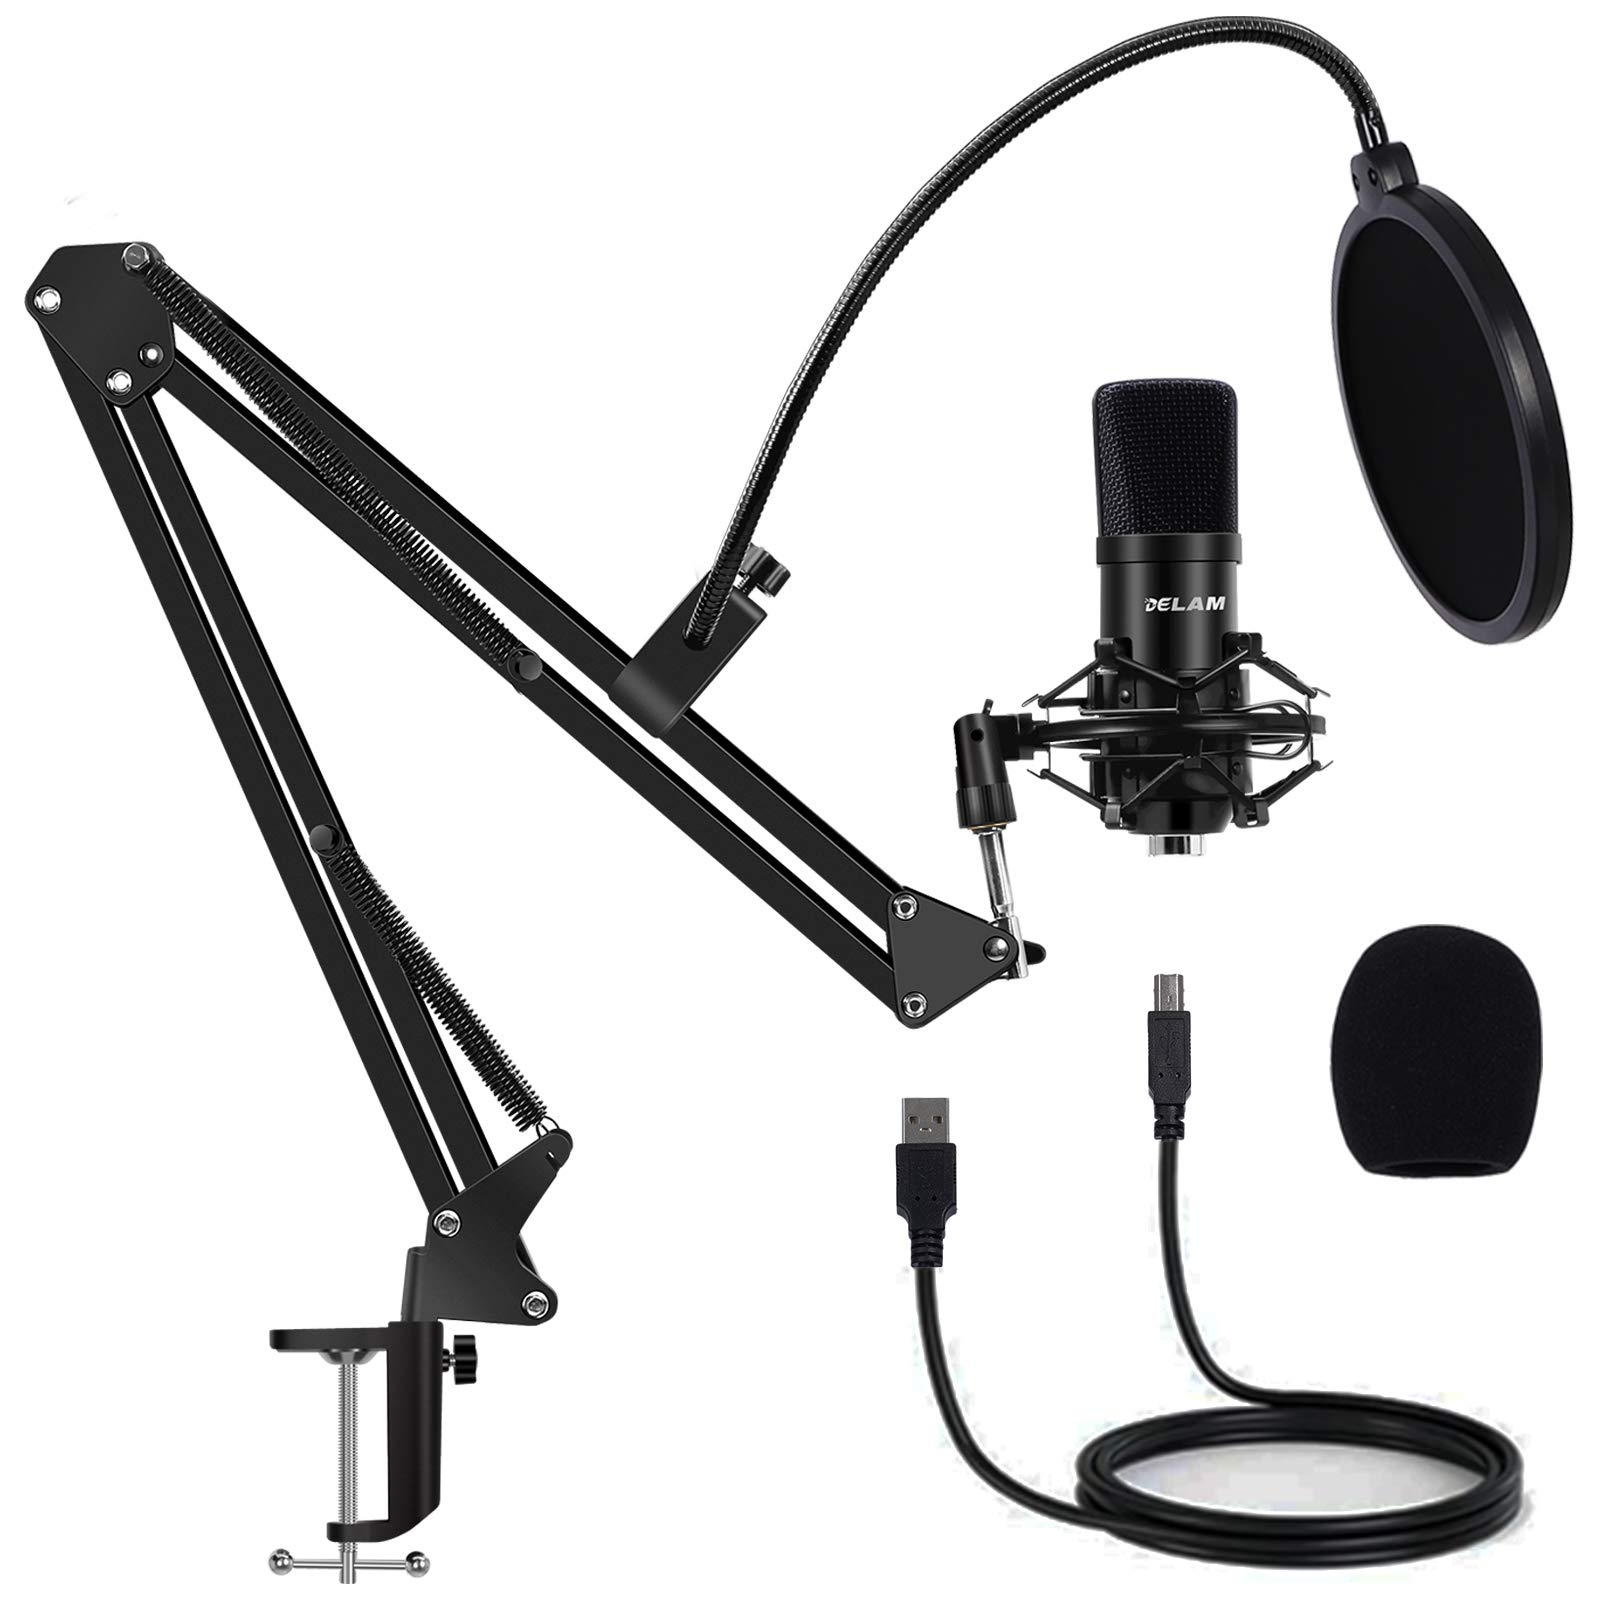 Delam USB Studio Podcast Gaming Microphone Kit, 192KHz/24BIT Plug & Play Professional Cardioid Condenser Streaming Mic with Boom Arm, Metal Shock Mount, Pop Filter for Vocal Music Recording PC Youtube